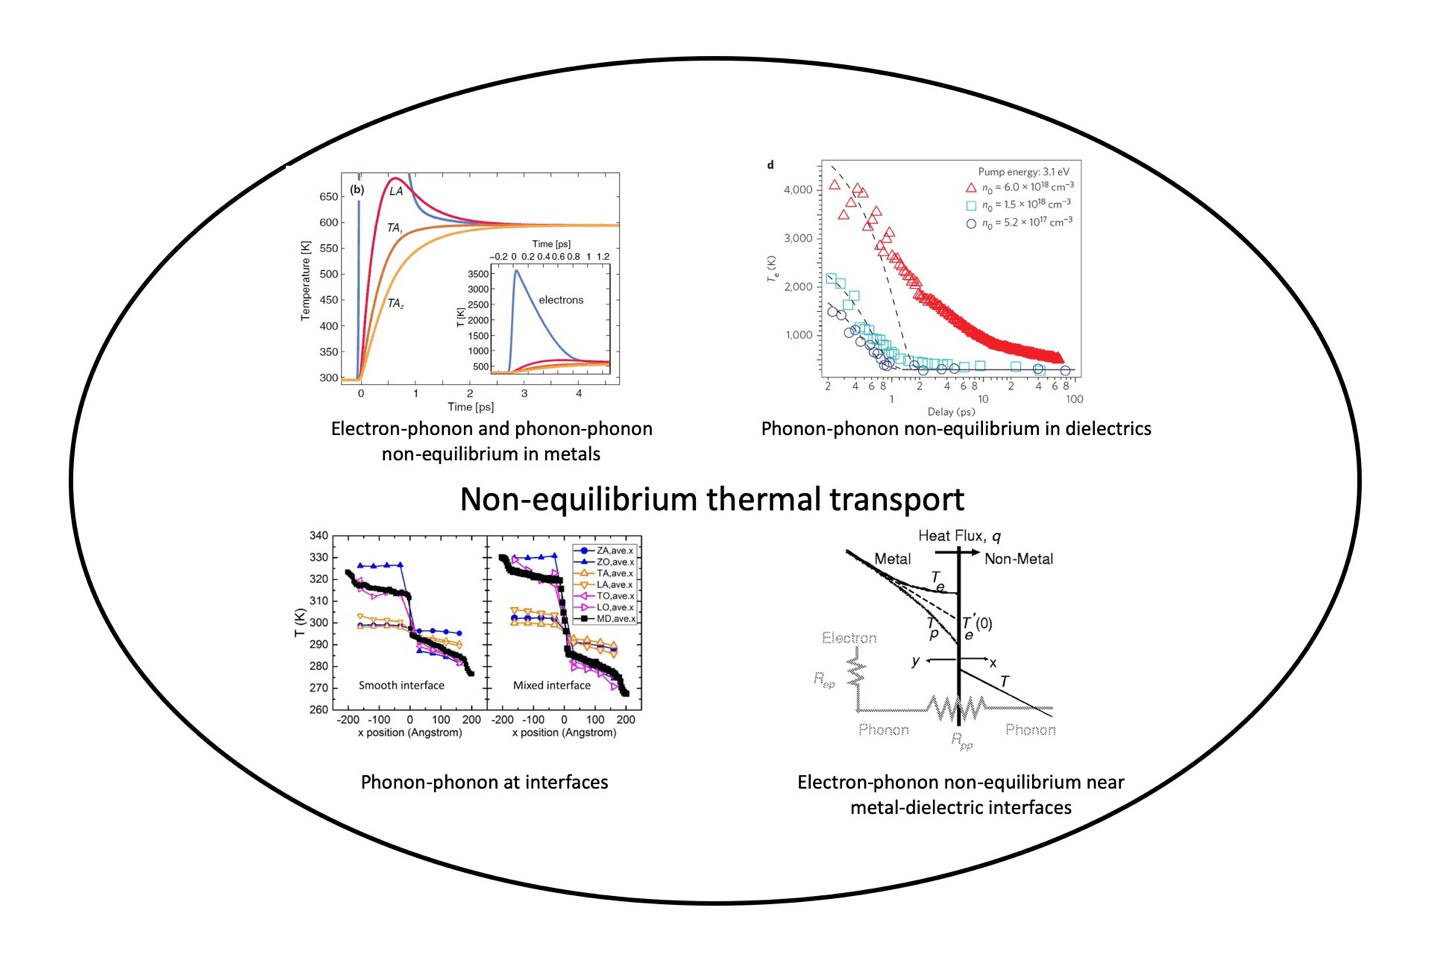 Non-Equilibrium Thermal Transport: A Review of Applications and Simulation Approaches